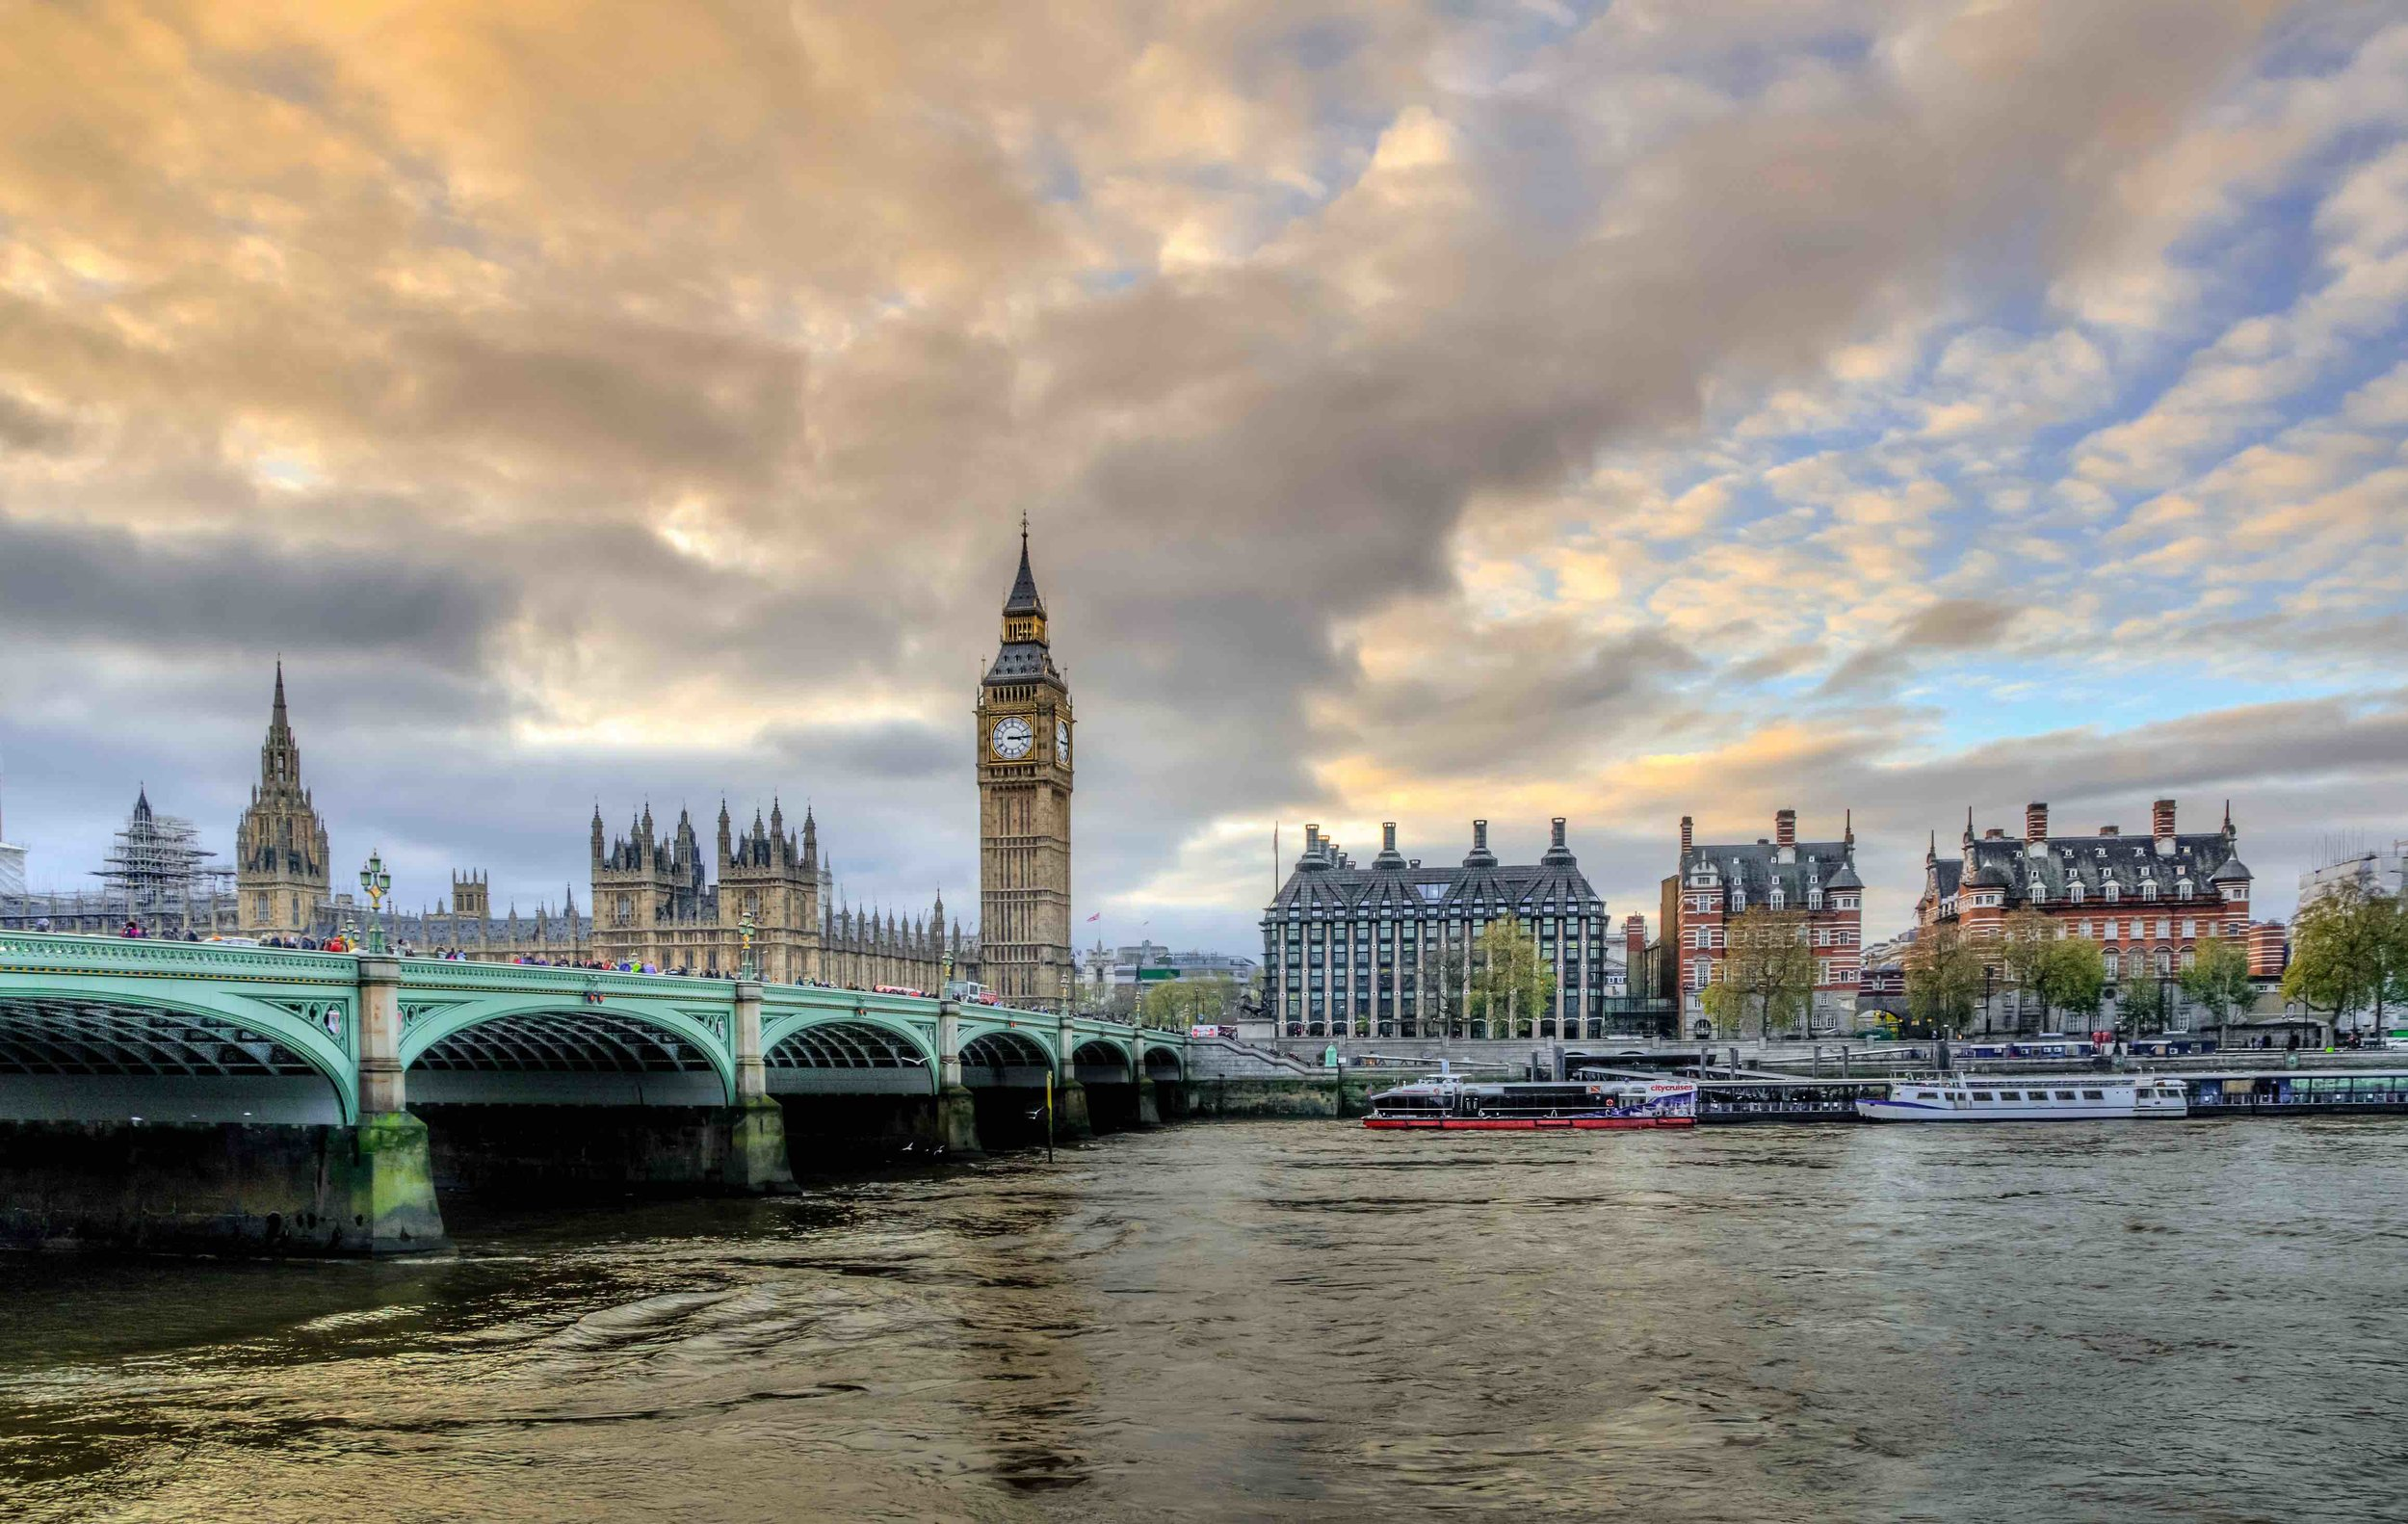 architecture-big-ben-bridge-82857 copy 2.jpg